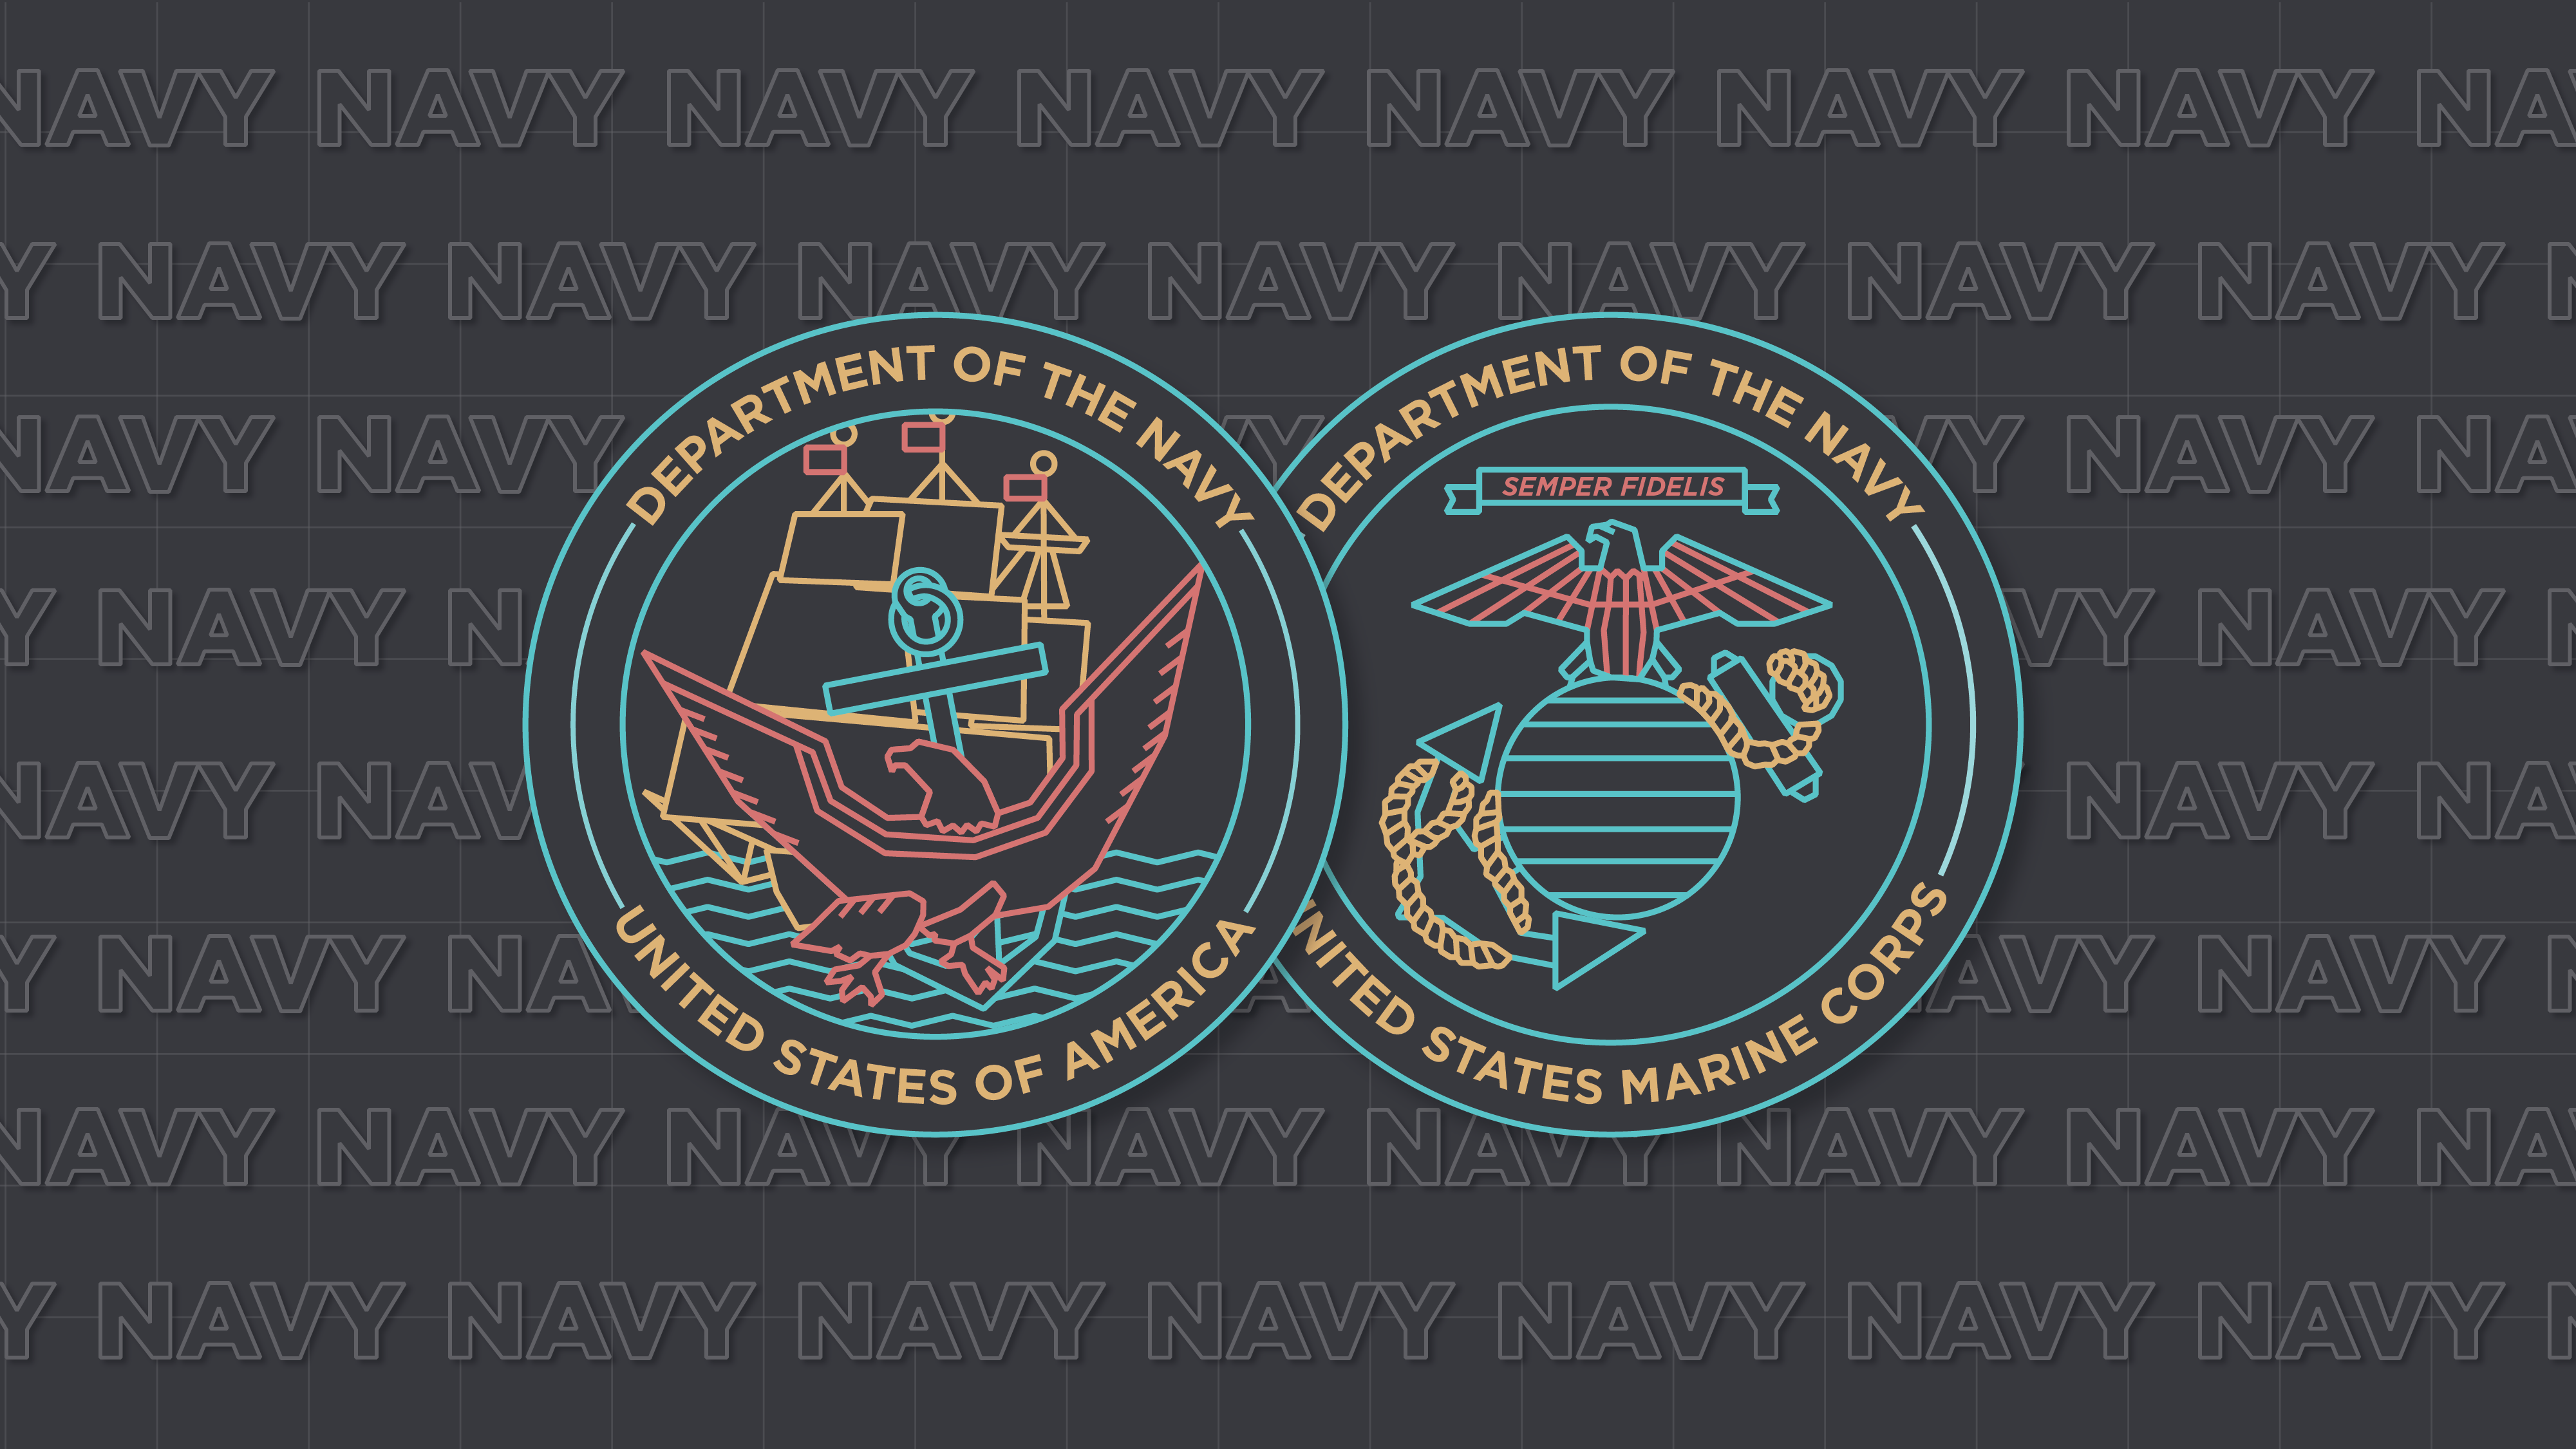 2019 Presidents Budget Request For The Navy And Marine Corps